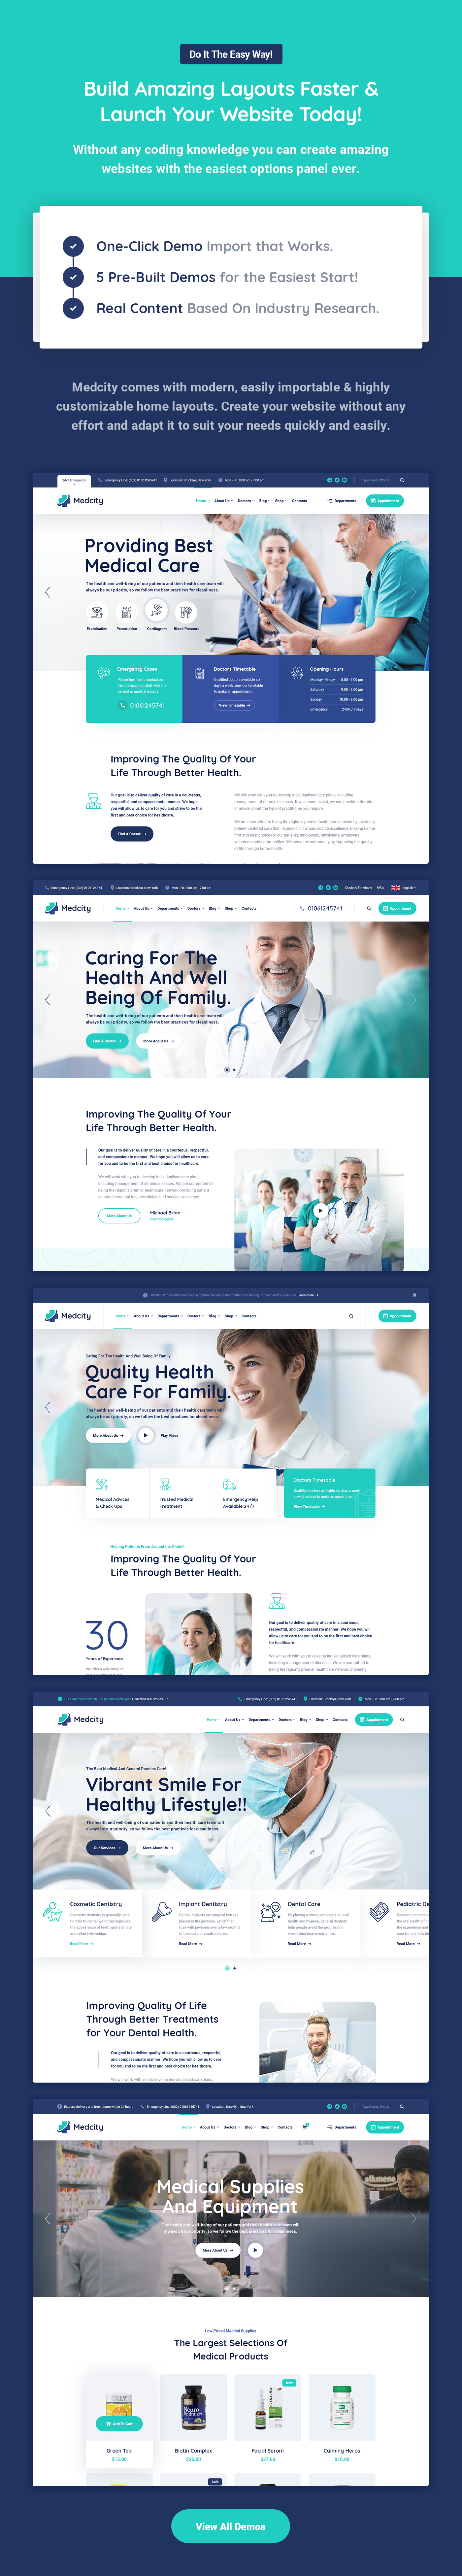 Medcity - Health & Medical WordPress Theme - 6